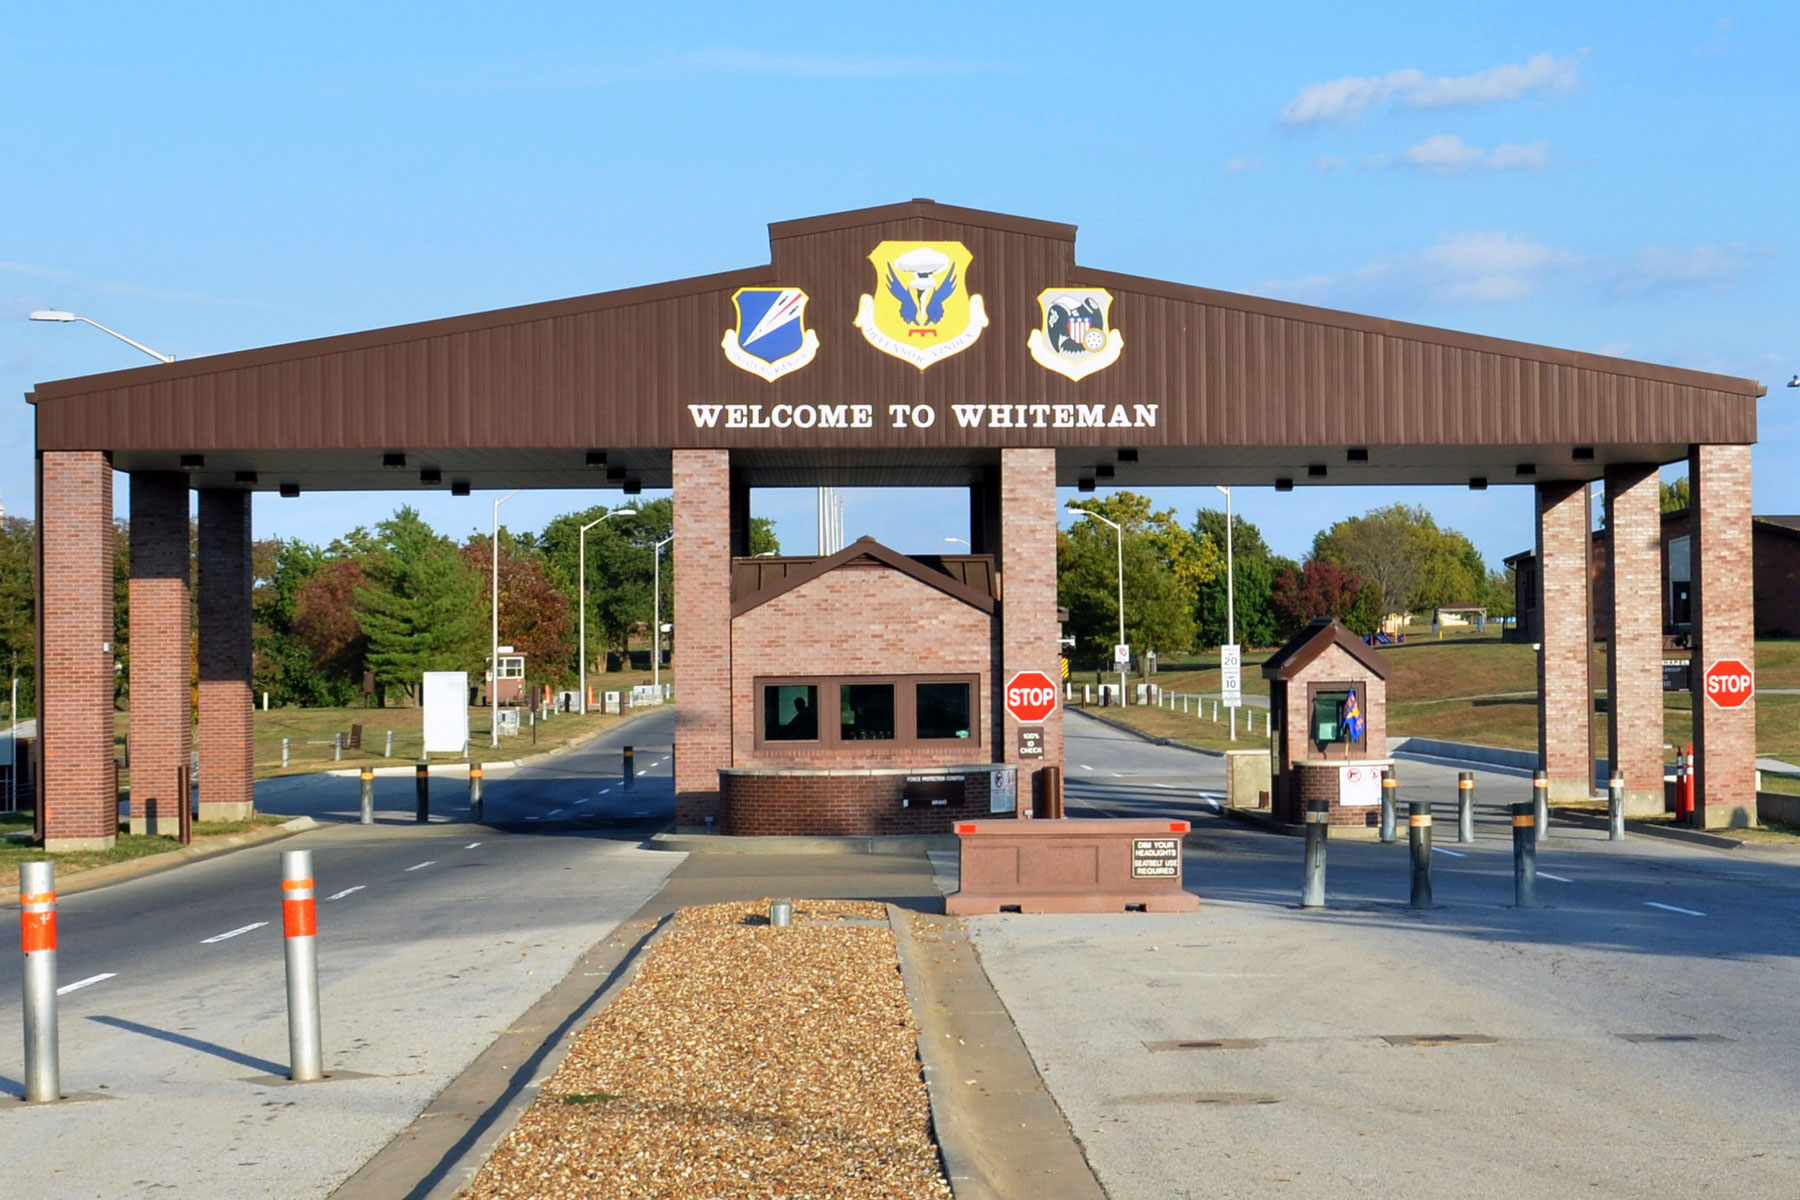 whiteman air force base dating site Whiteman air force base airman dominic sacco has been sentenced to four years in jail for the fatal shooting of friend and fellow airman john j bottom, 22, on may 9, 2015.